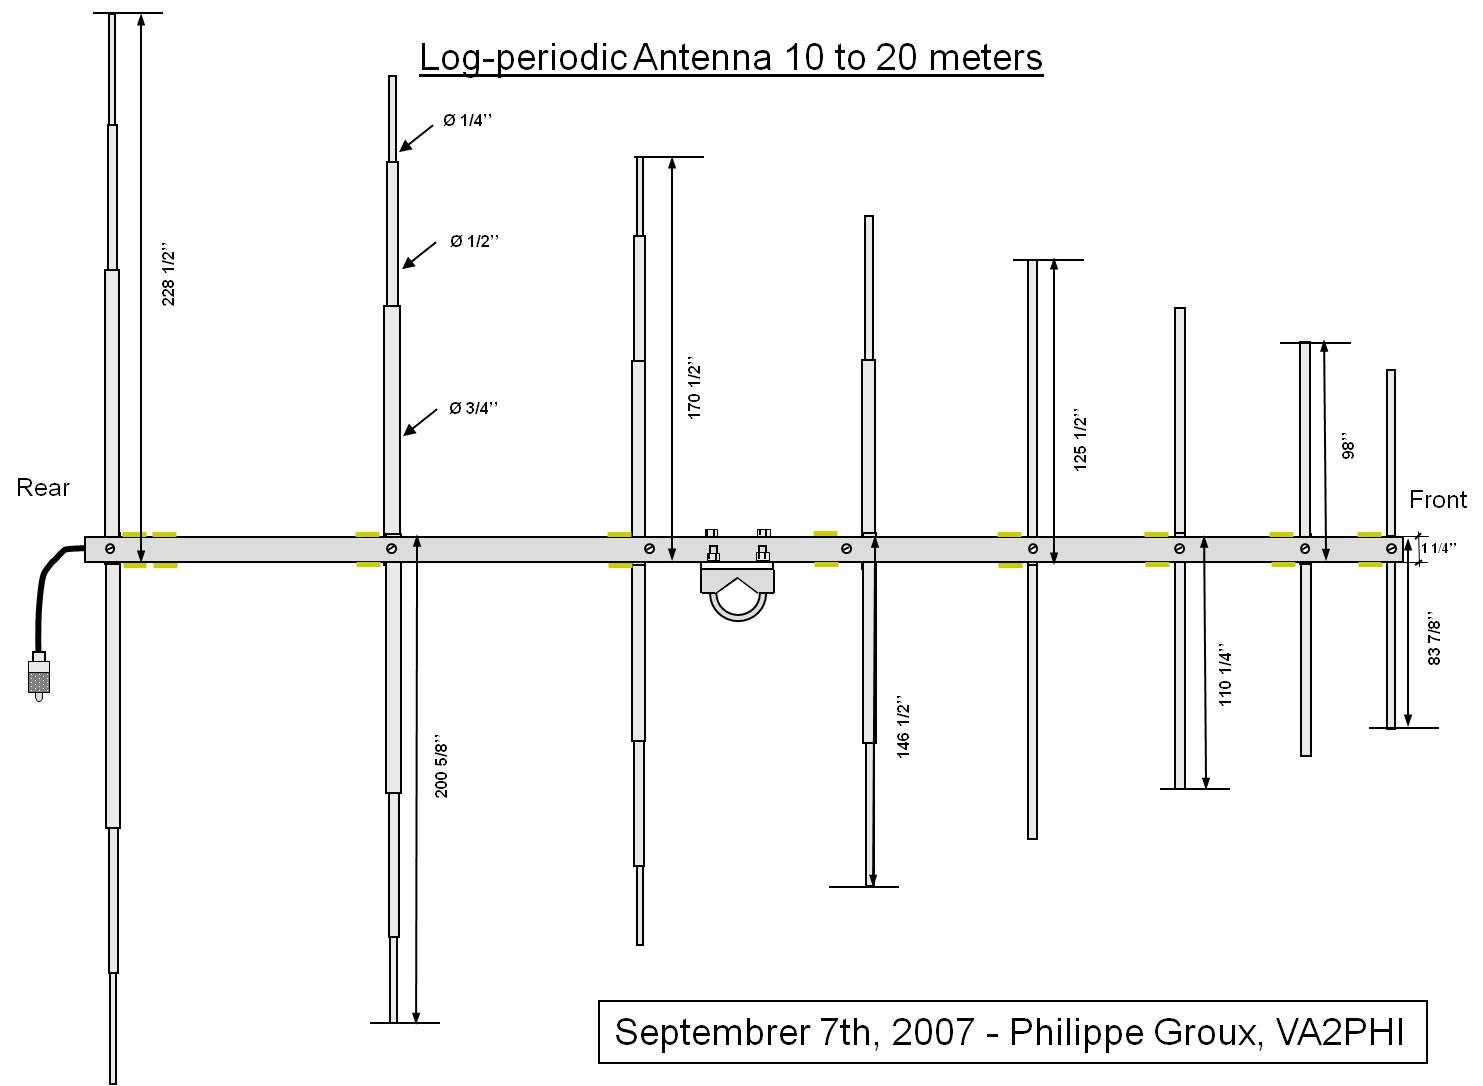 Log Periodic Antenna for 10-20 meters bands